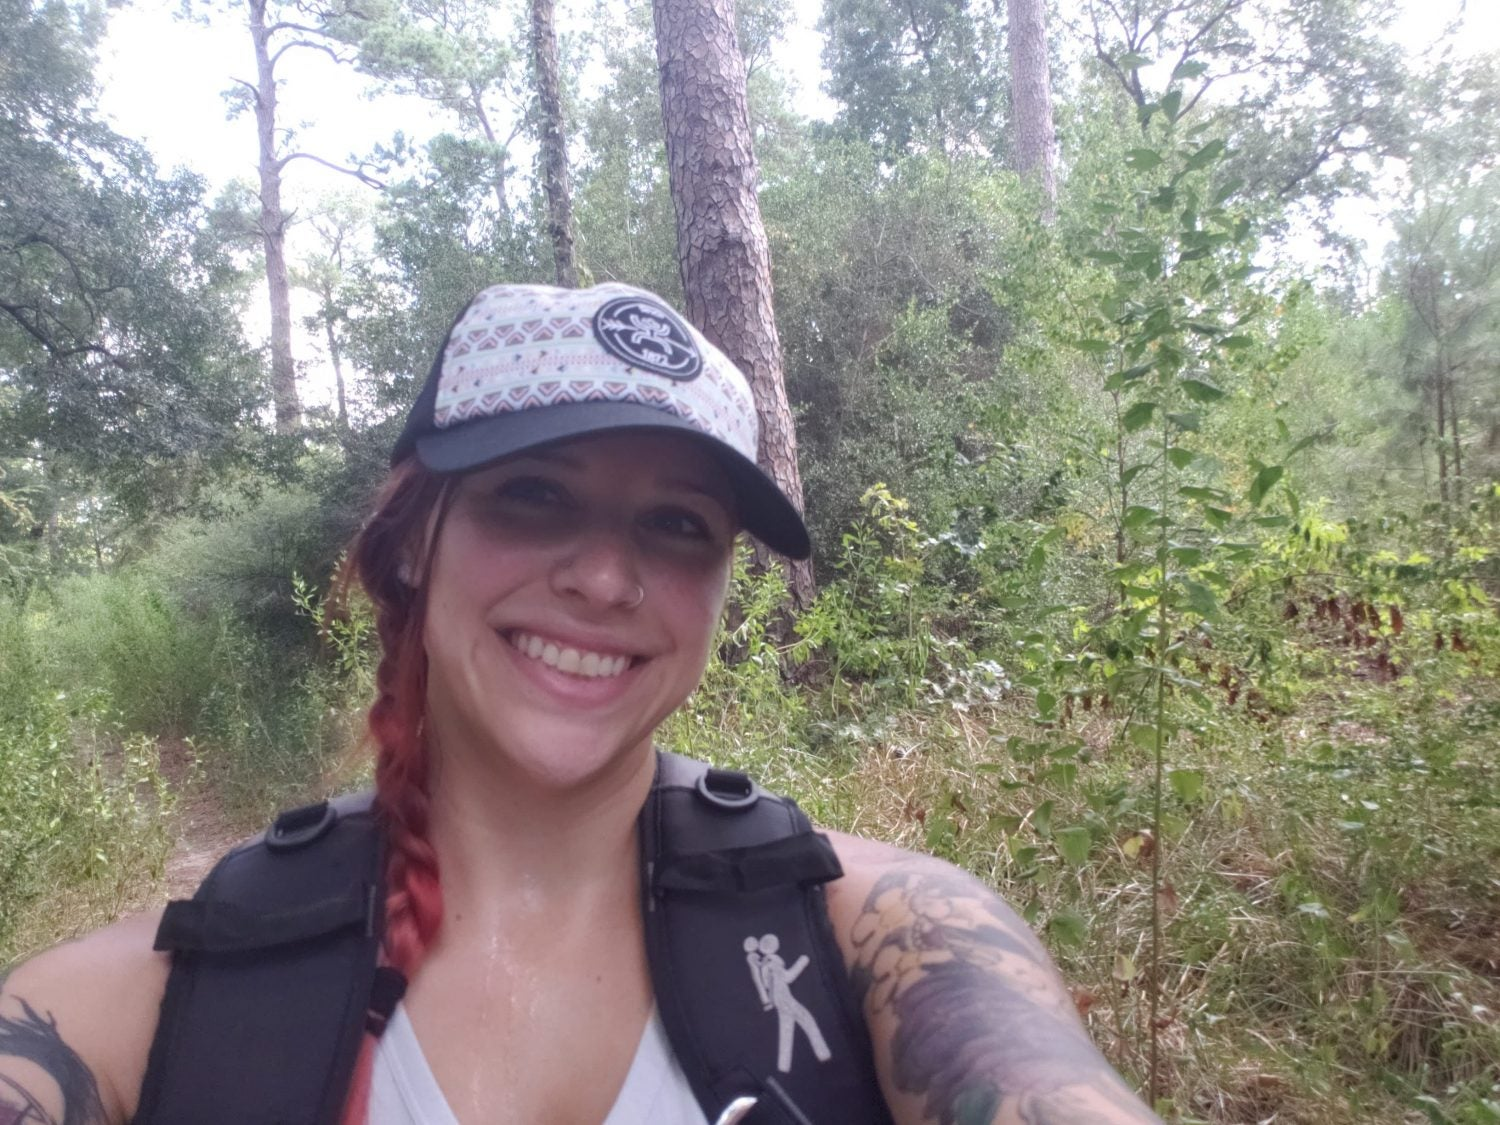 a female hiker poses for a selfie in the wilderness